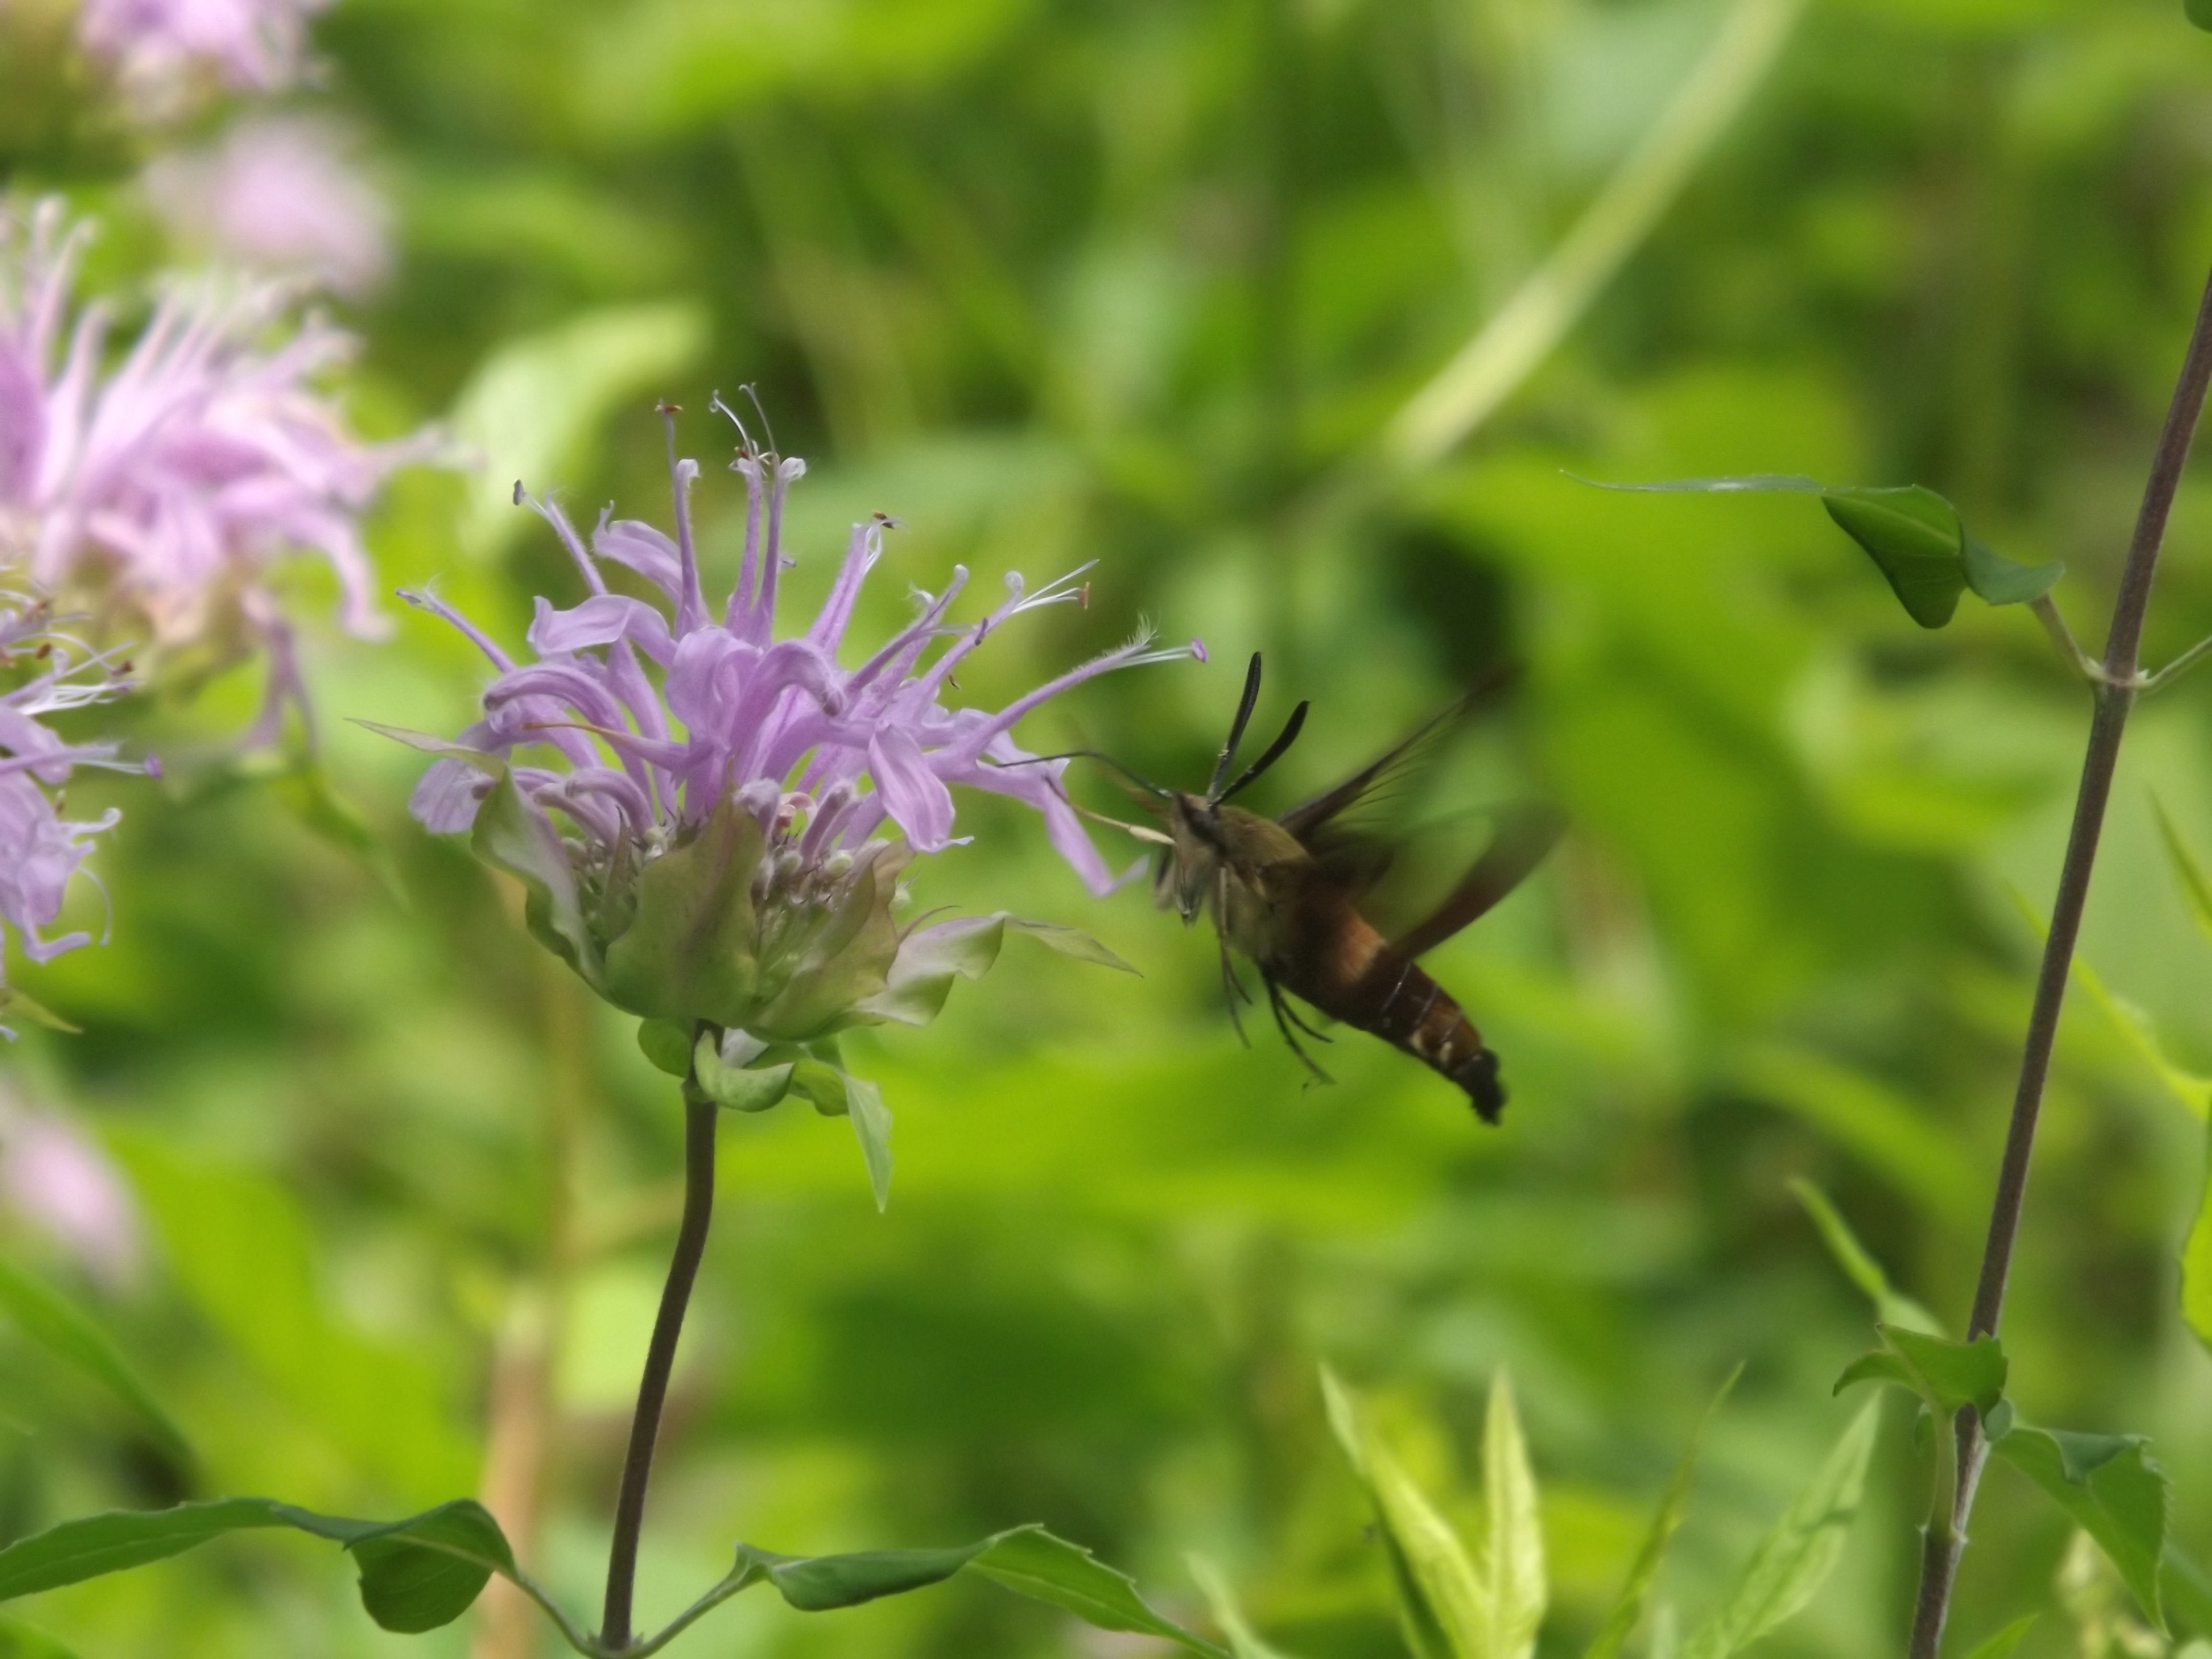 Hummingbird Moth ( Hemaris thysbe ) - Hummingbird Moths are aptly named since they look, fly, and have similar feeding habits just like true Hummingbirds. It is really odd to me how similar they actually are, but Hummingbird Moths are beautiful in their own right. This was the only picture I was able to get, so thankfully it was in focus since the moth was gone a few seconds later.